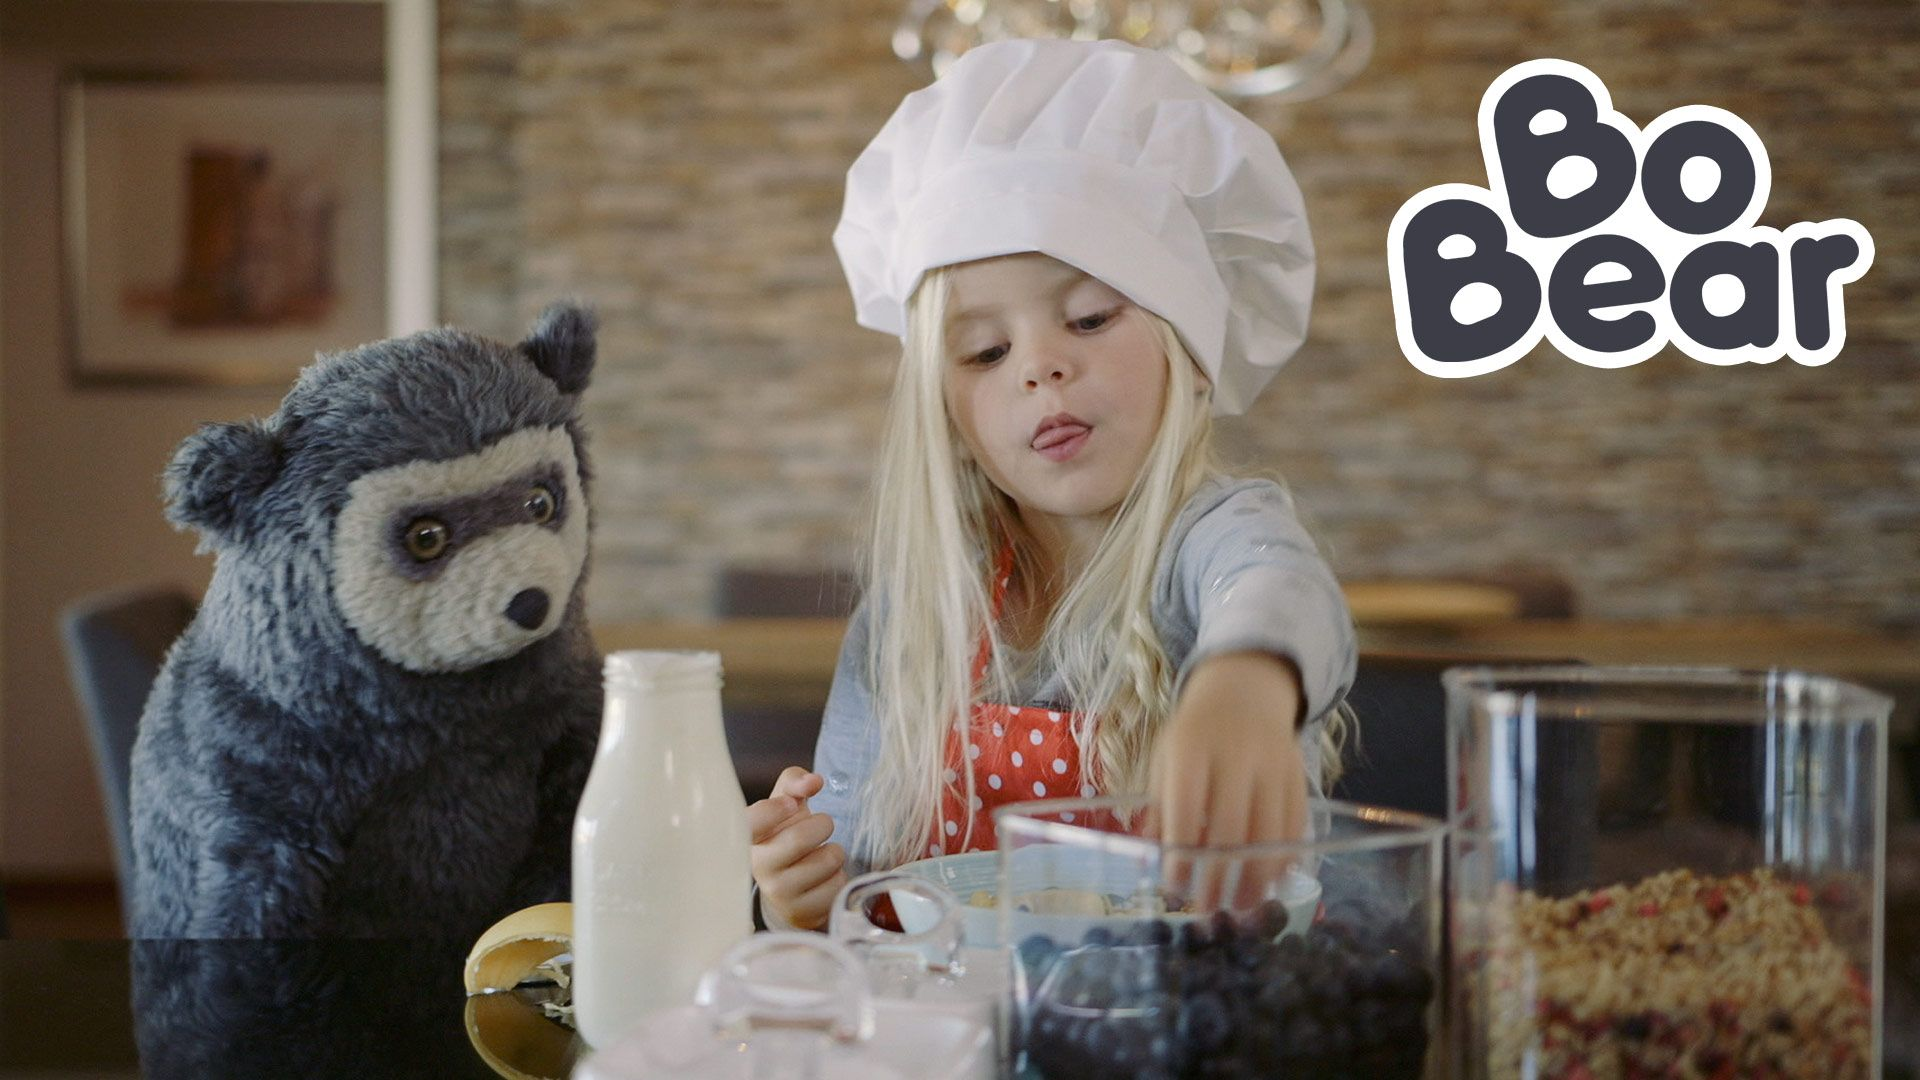 Great news for our little Bo Bear, winner of the PRIX JEUNESSE Theme Prize!